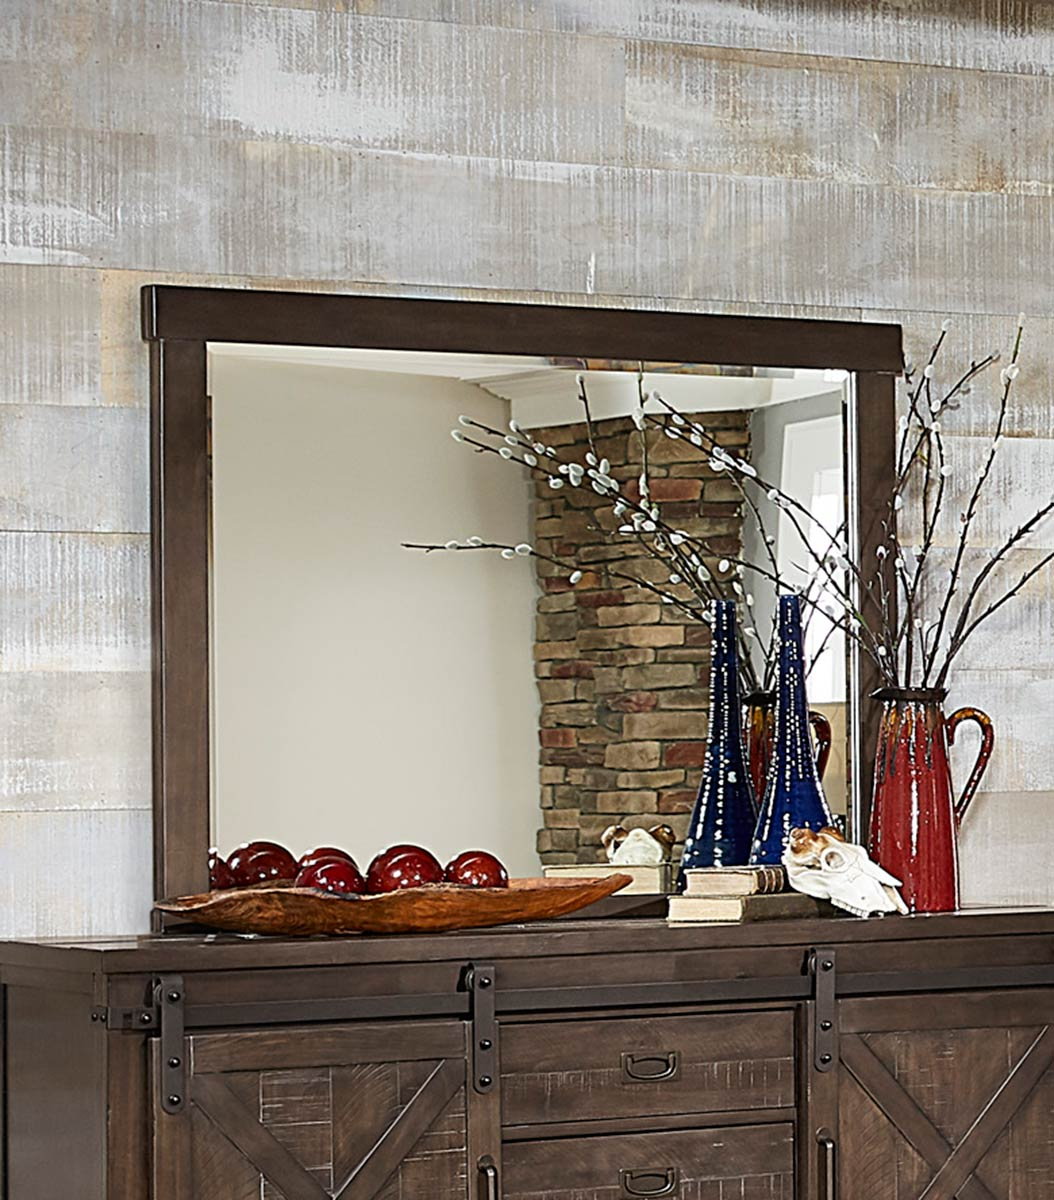 Homelegance Hill Creek Mirror - Rustic Brown